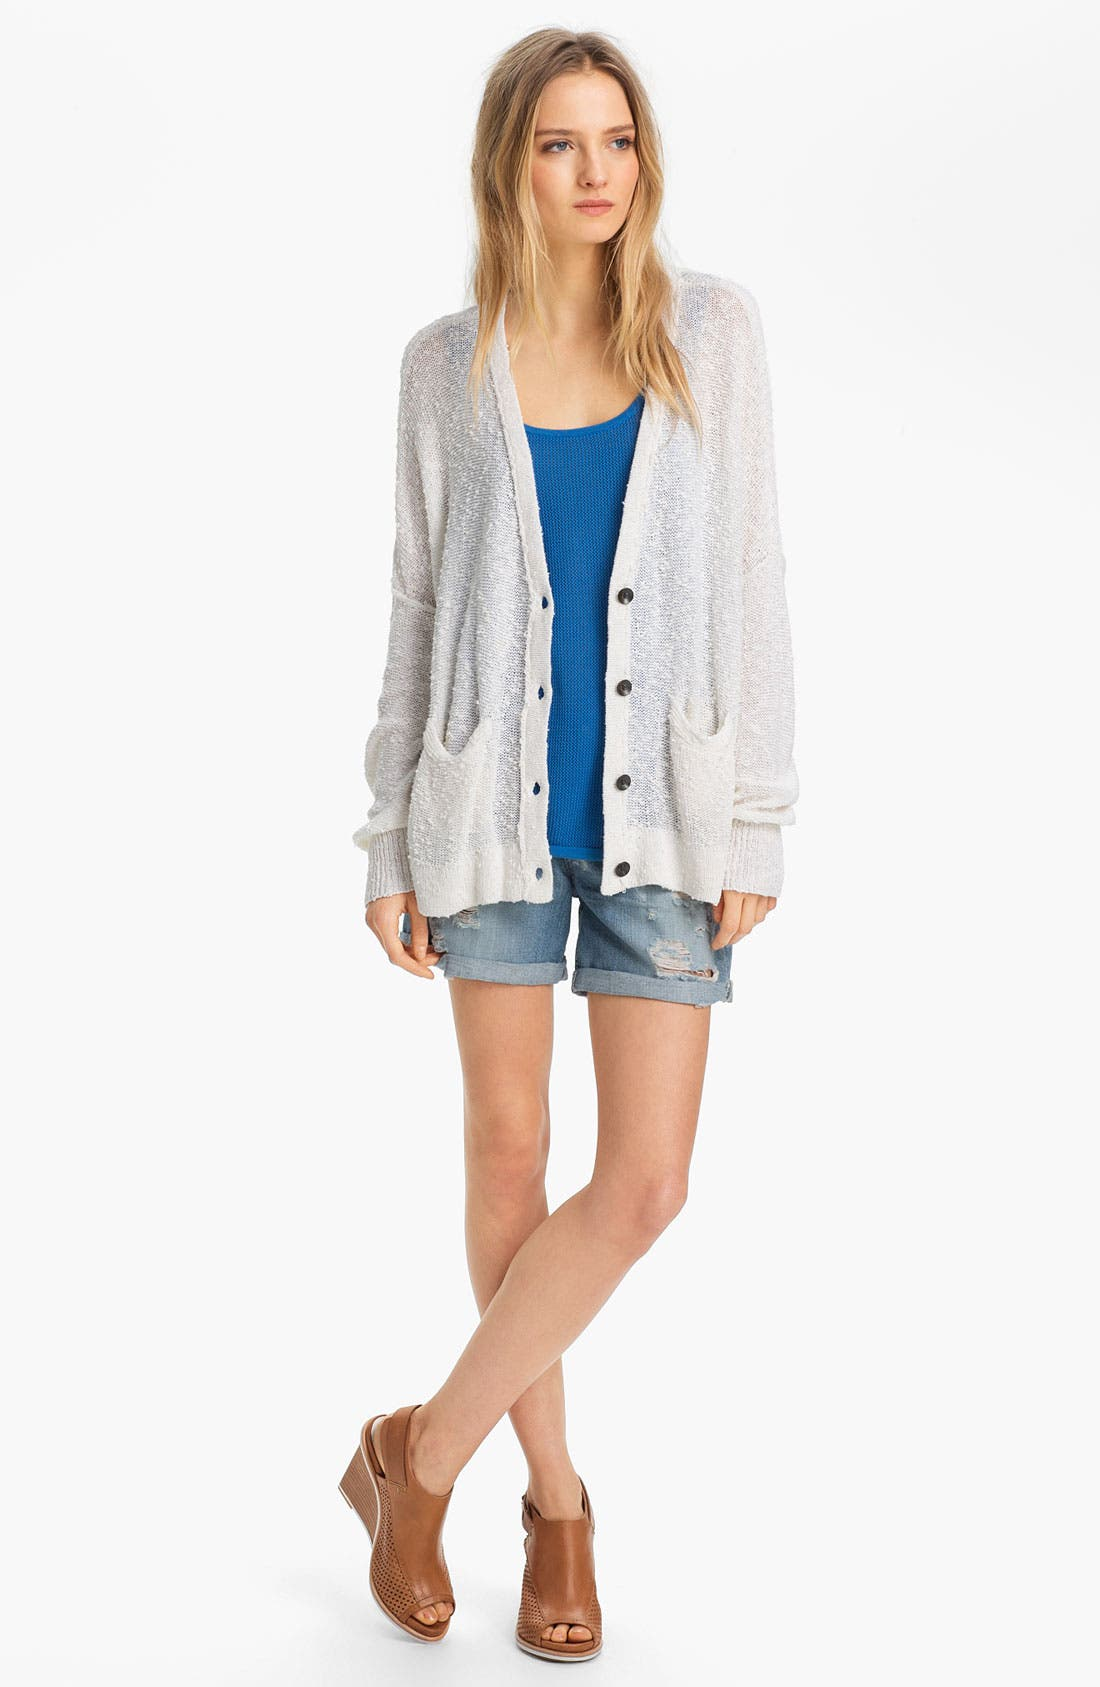 Main Image - rag & bone/JEAN 'Marilyn' Cardigan